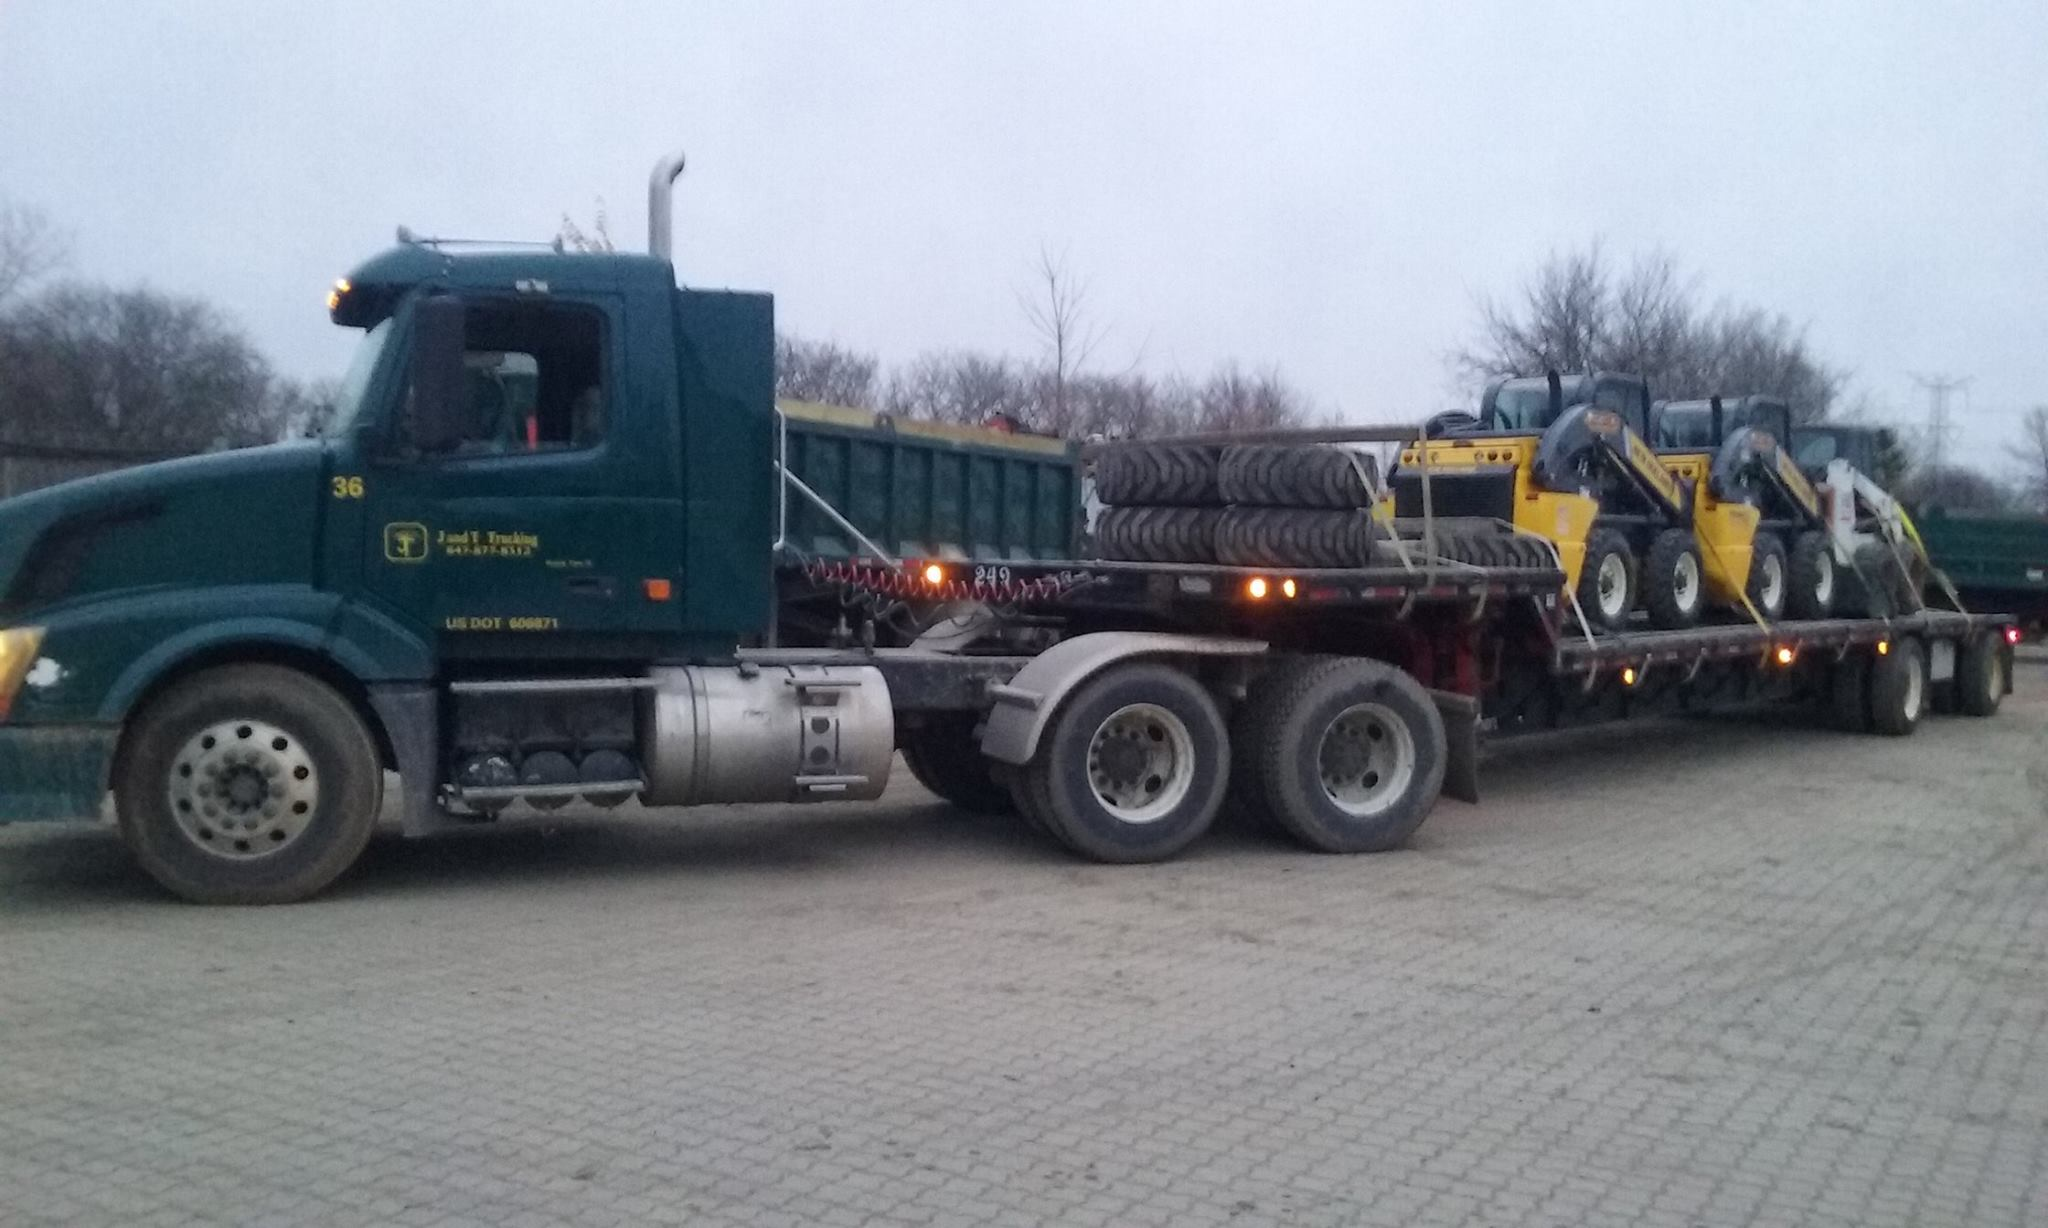 Excavating and demolition landscaping services by landscaping companies in Buffalo Grove, IL